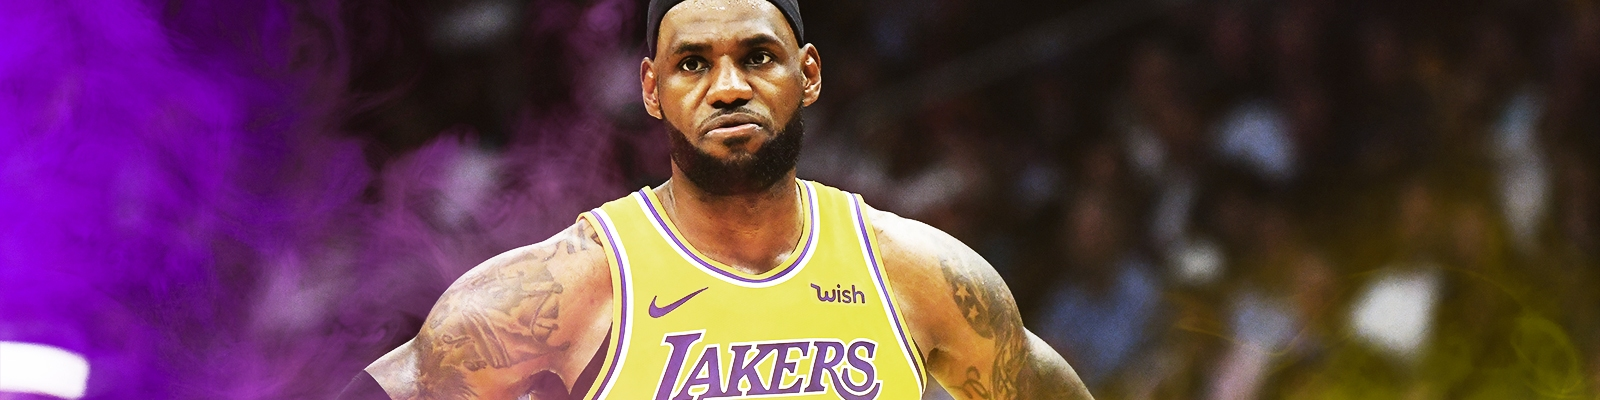 LeBron Looking Like Himself Again Was Worth The Wait, Even If There's Work To Do